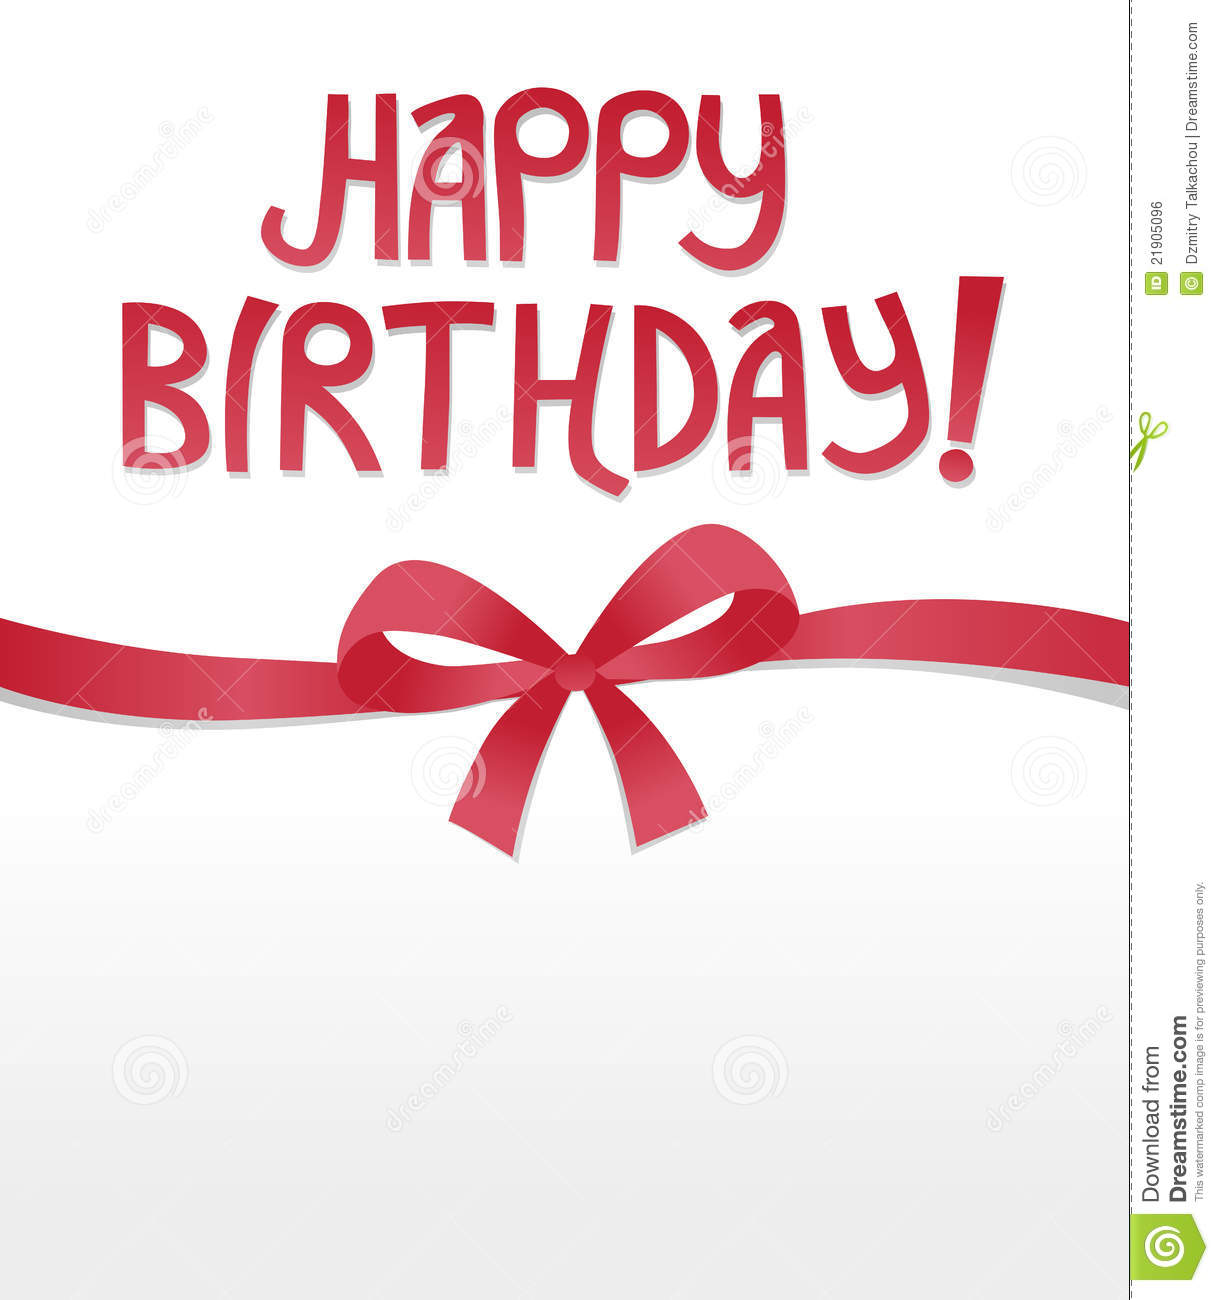 Happy Birthday Ribbon Bow Royalty Free Stock Image - Image: 21905096